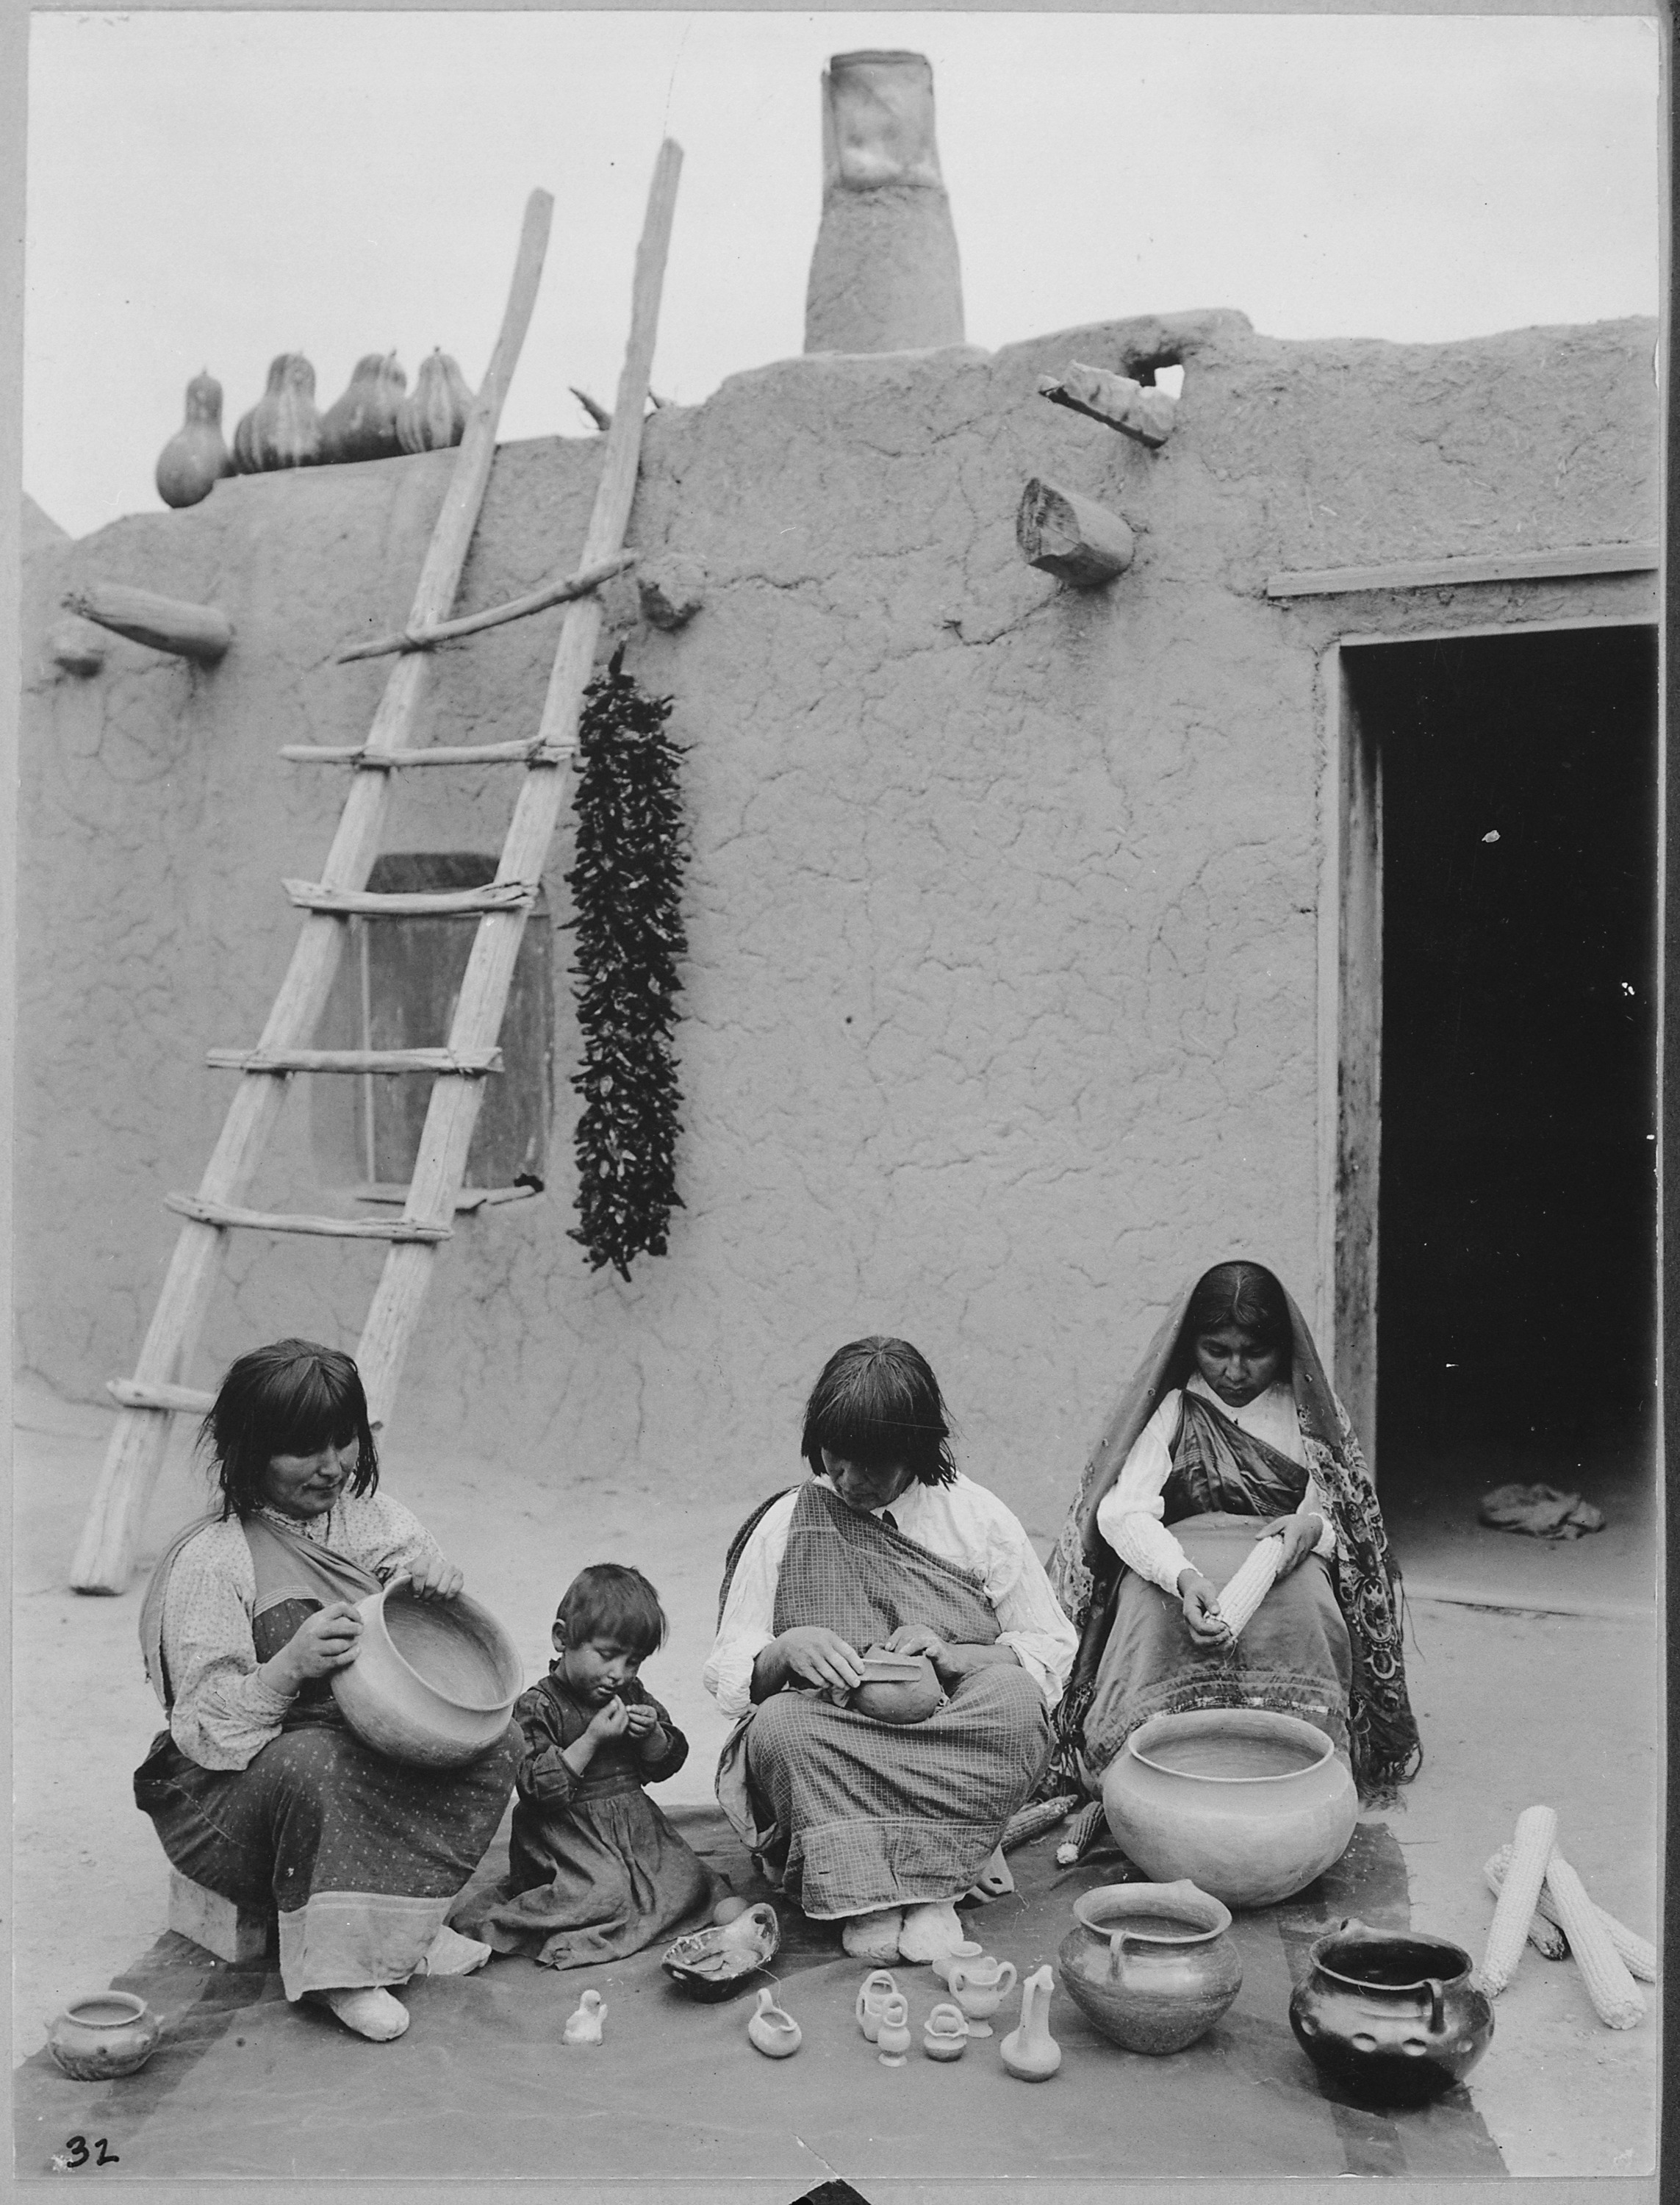 a history of the pueblo indians in new mexico and arizona History the pueblo indians are believed to be descended from the ancient pueblo peoples, also known as the anasazi there are now some 35,000 pueblo indians, living mostly in new mexico and arizona along the rio grande and colorado river.